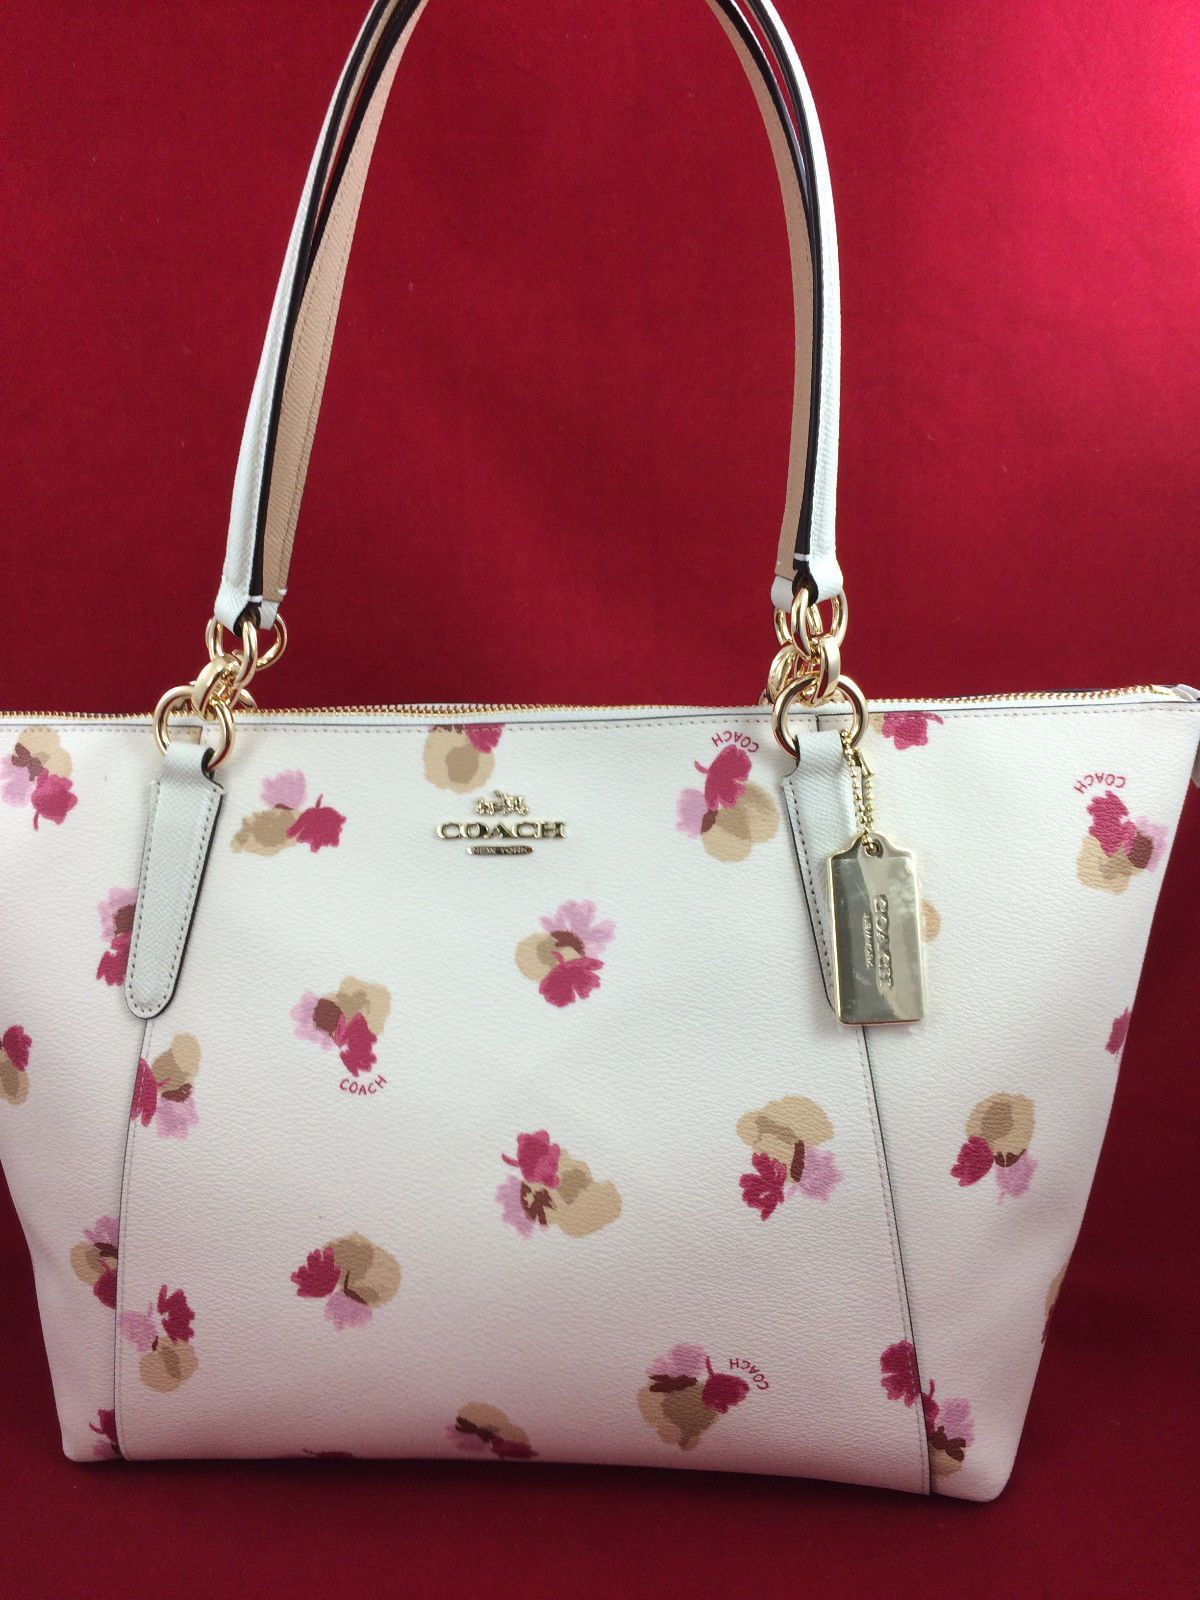 New COACH F55192 AVA Field Floral Canvas Tote Handbag Purse Shoulder Bag  Chalk f225aea18b